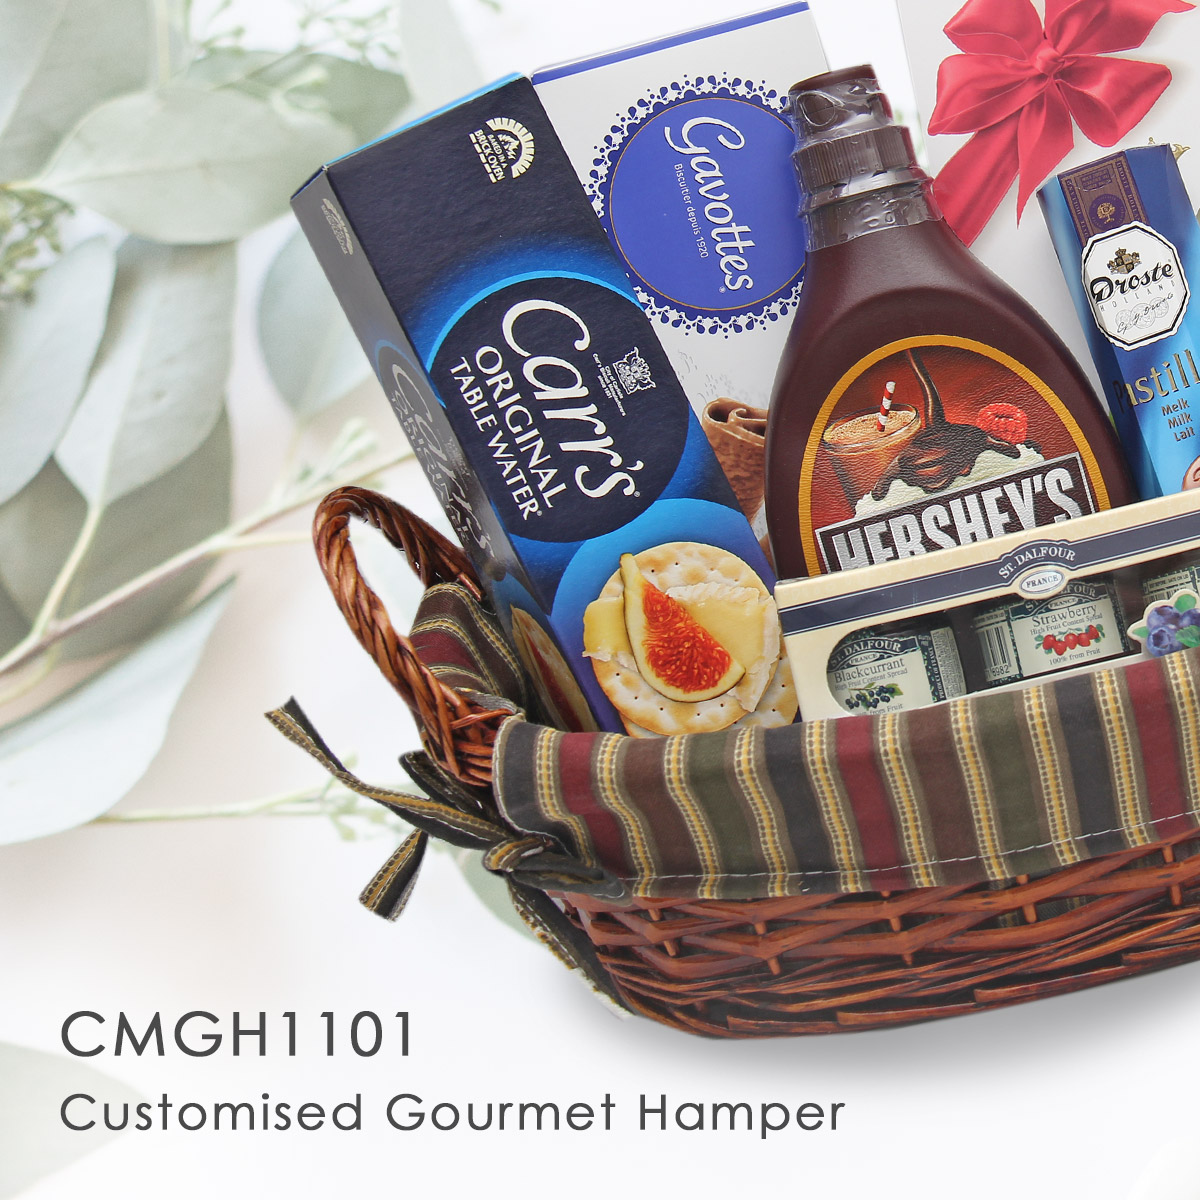 Customised Gourmet Hamper